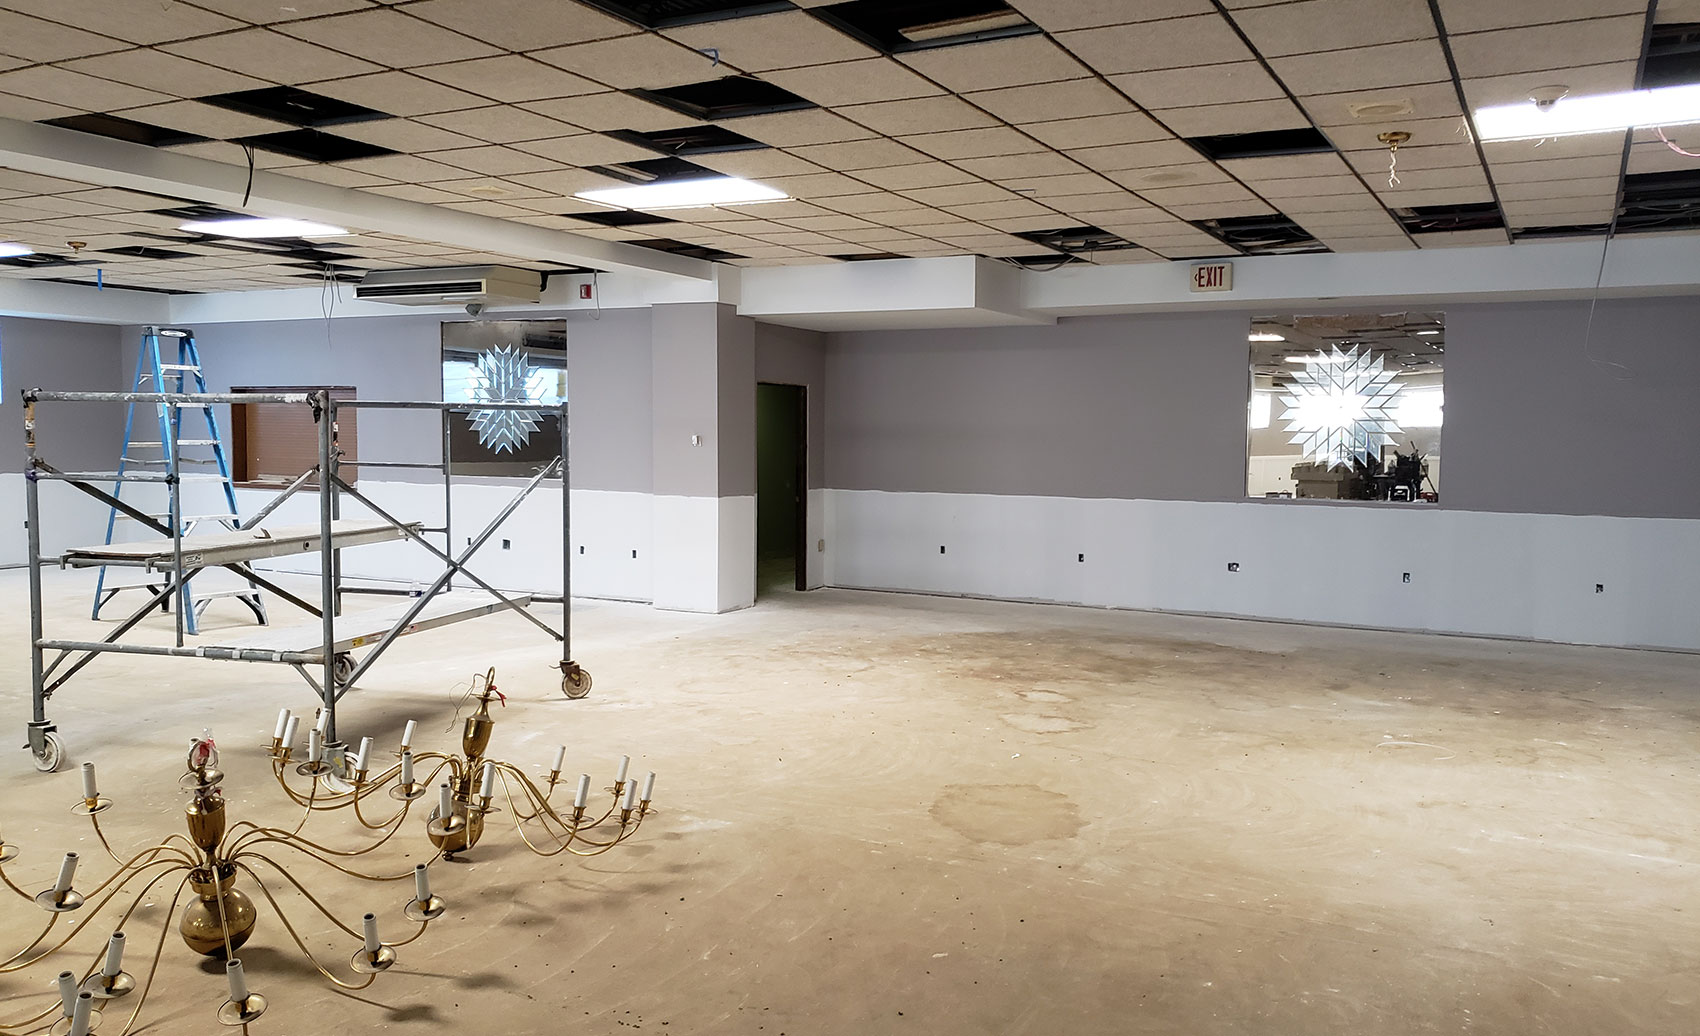 MLK center erie, pa, commercial renovation